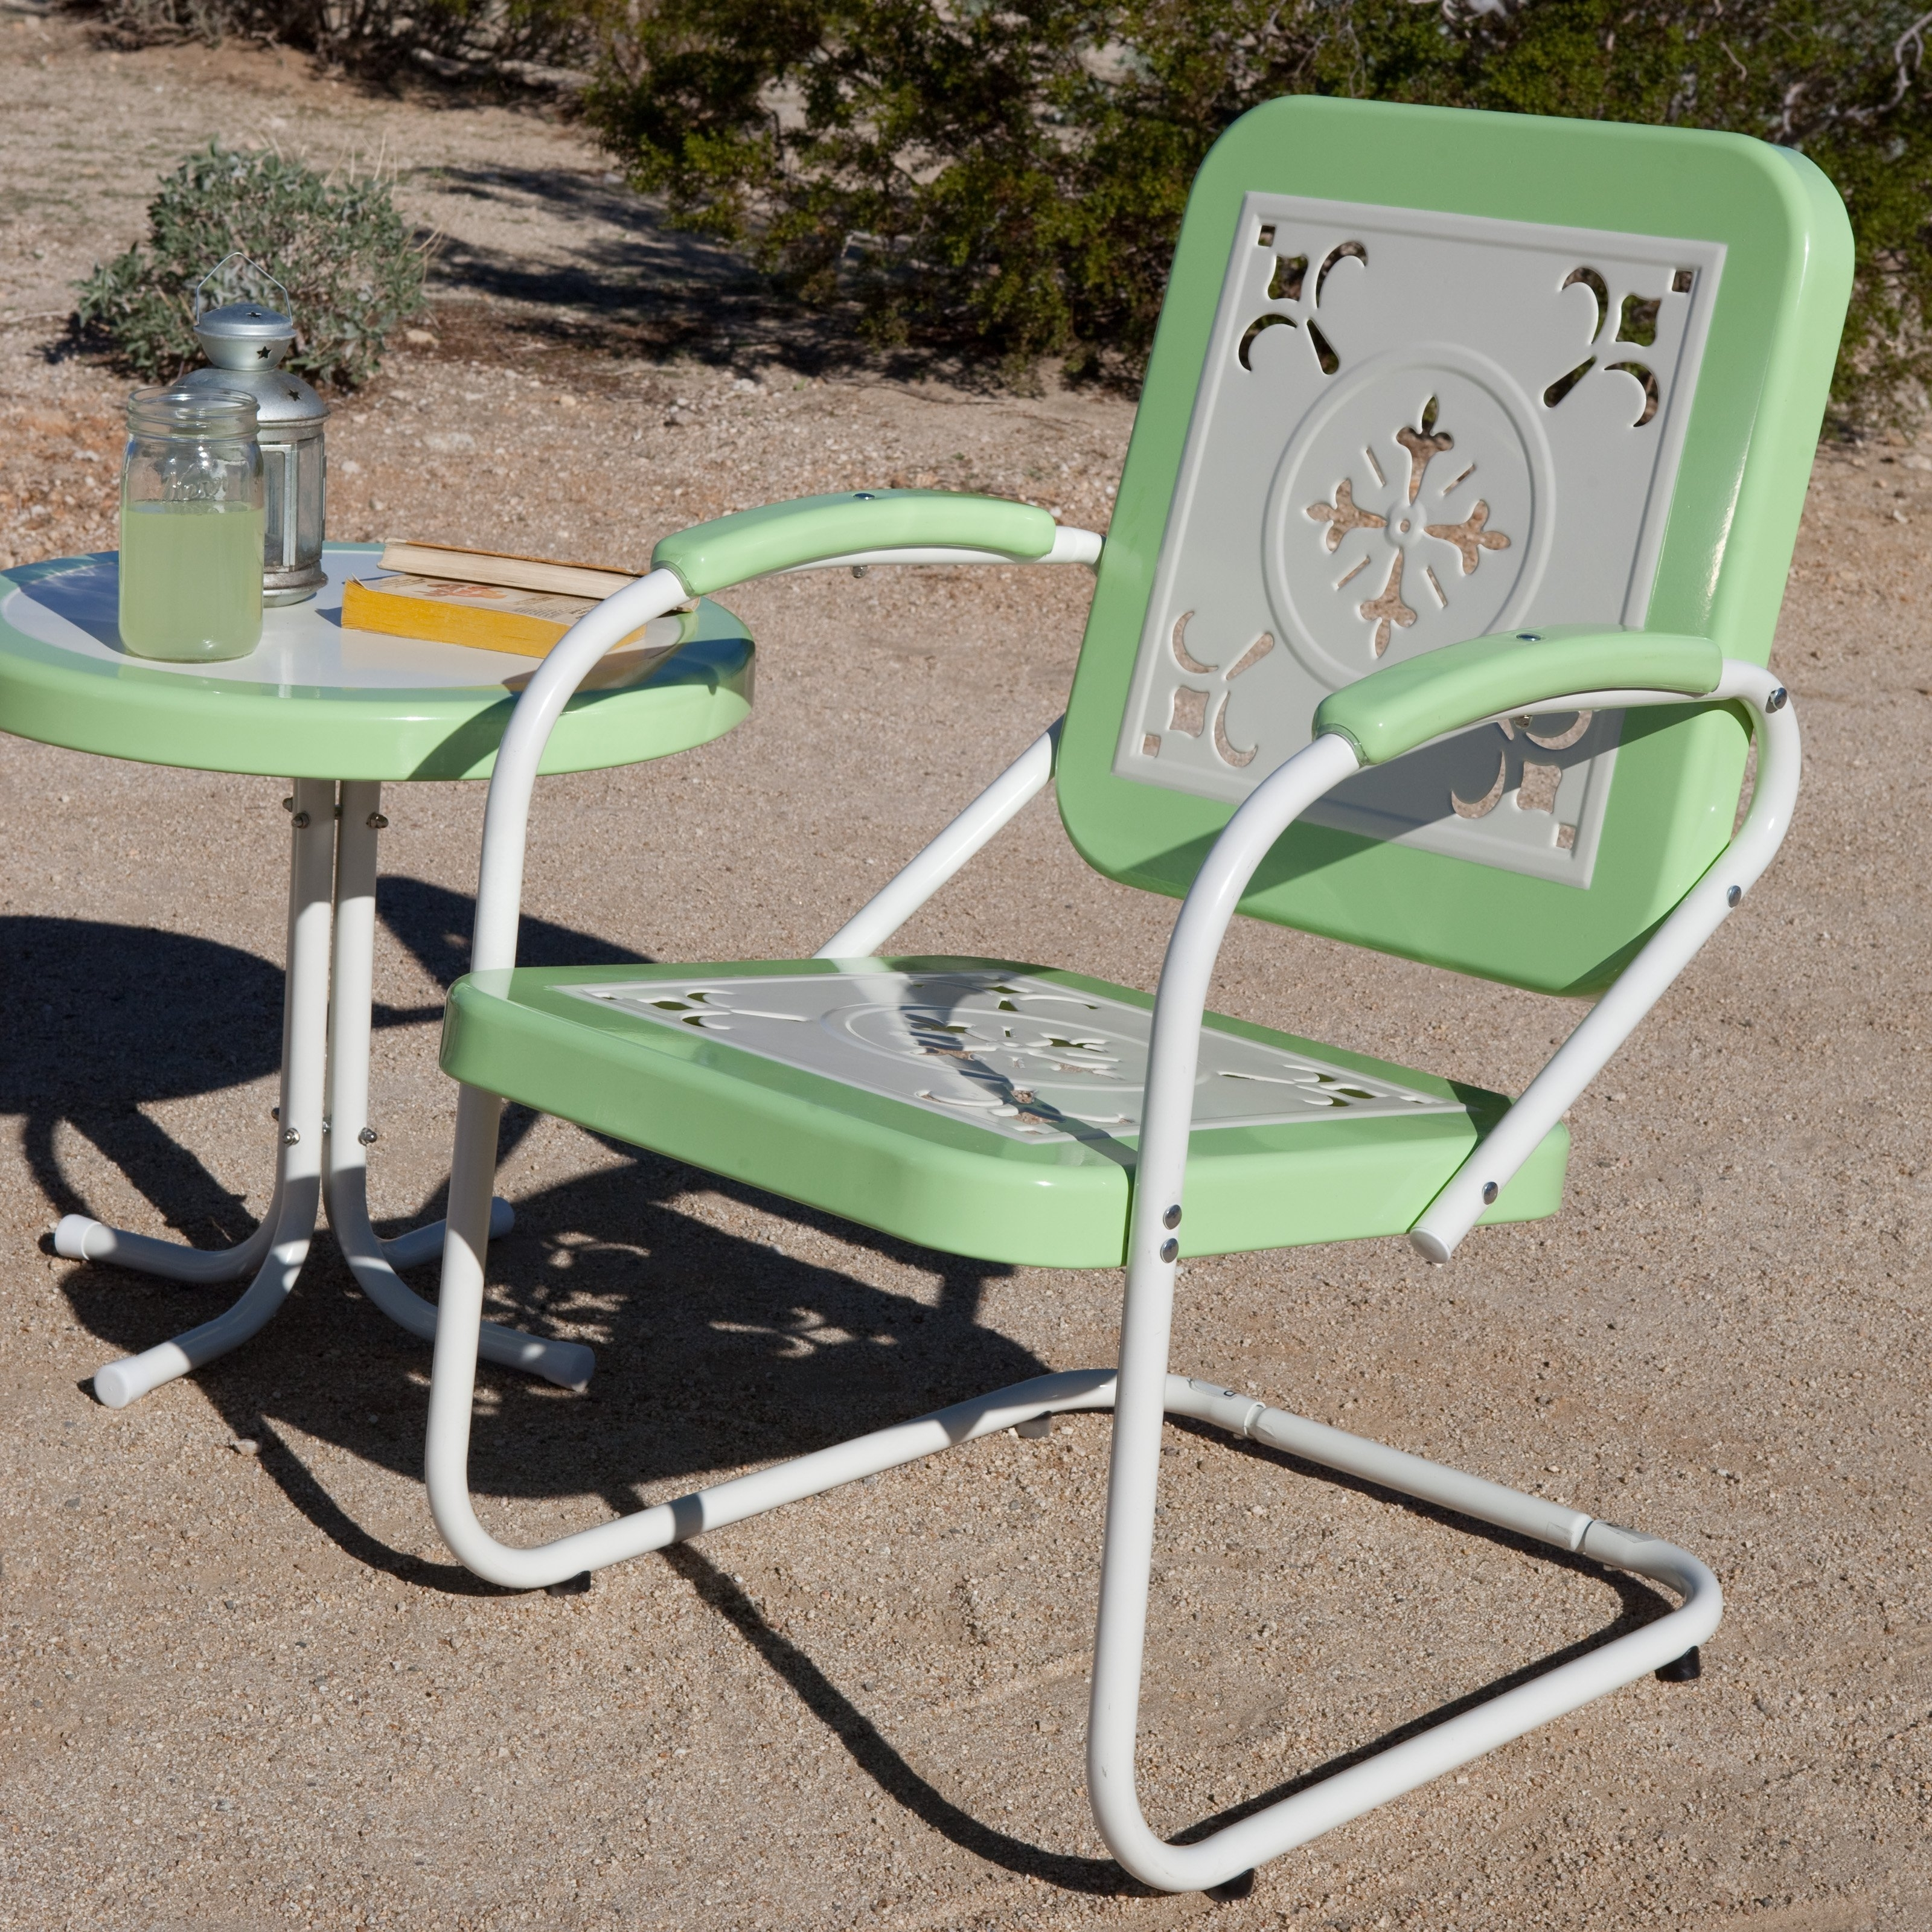 Focus Vintage Outdoor Furniture Retro Metal Patio Chairs Lawn With Regard To Well Known Wrought Iron Patio Rocking Chairs (View 7 of 20)